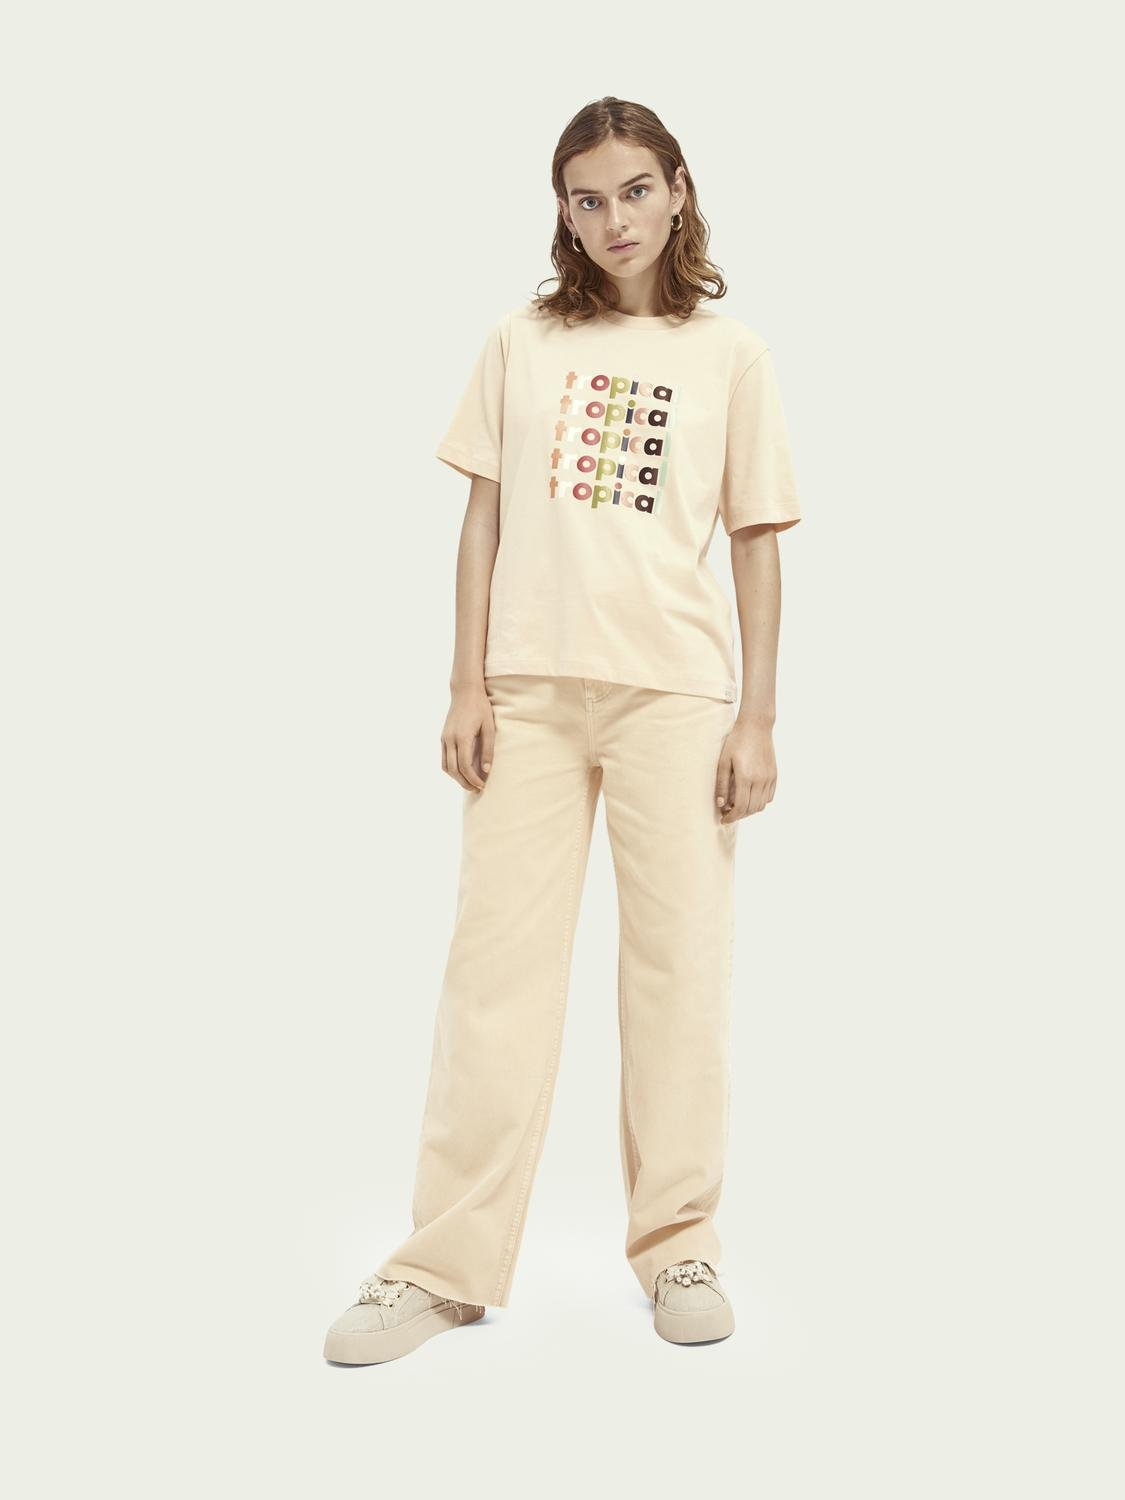 Boxy fit graphic T-shirt 1